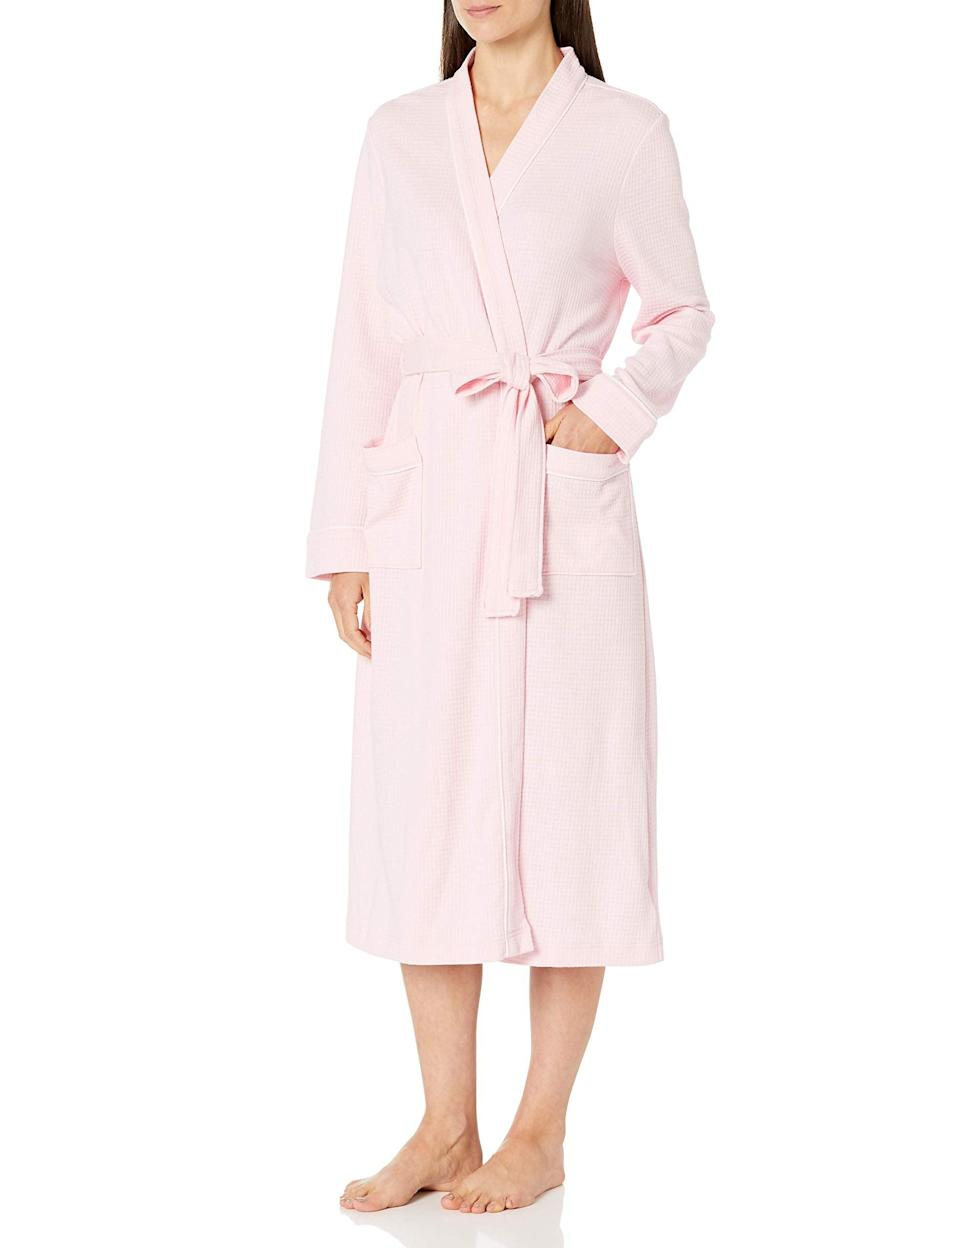 """<h3>Lightweight Cotton Robe</h3><br>Gift mom a lightweight, natural cotton robe she can lounge in all spring through summer long.<br><br><strong>Rating: </strong>4.7 out of 5 stars, and 2,333 reviews<br><br><strong>A Satisfied Customer Review: </strong>""""Love this robe. Quality fabric... excellent construction and really nice style. The sleeves stay out of the way while getting ready. That is so helpful. The sleeves of my old robe always seem to get wet in the sink.""""<br><br><strong>Amazon Essentials</strong> Lightweight Waffle Full-Length Robe, $, available at <a href=""""https://amzn.to/3sBFZku"""" rel=""""nofollow noopener"""" target=""""_blank"""" data-ylk=""""slk:Amazon"""" class=""""link rapid-noclick-resp"""">Amazon</a>"""